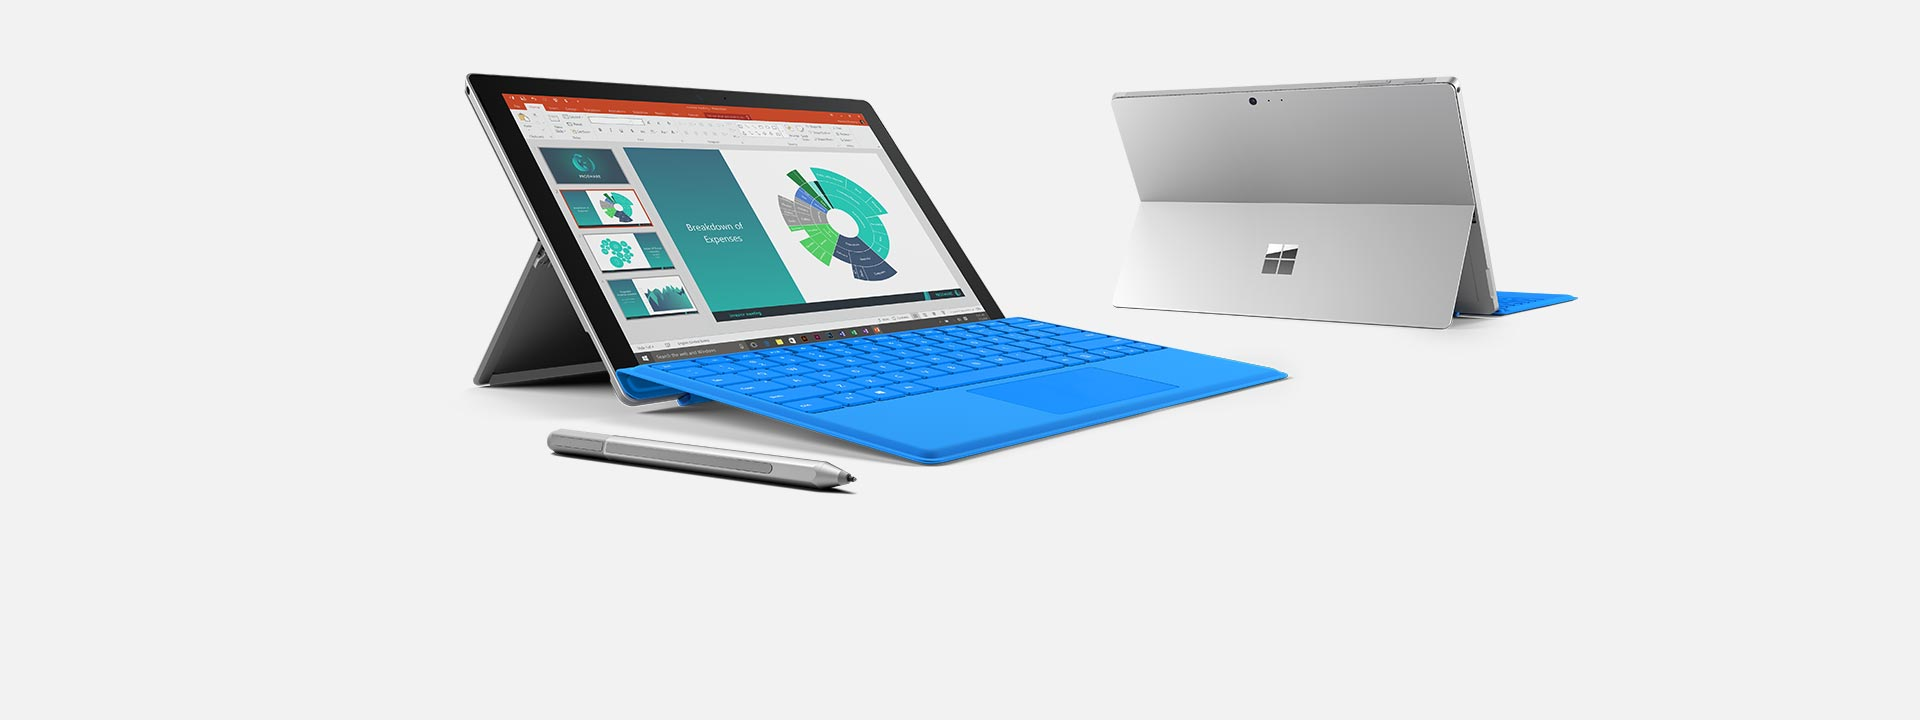 Surface Pro 4 devices, learn about them